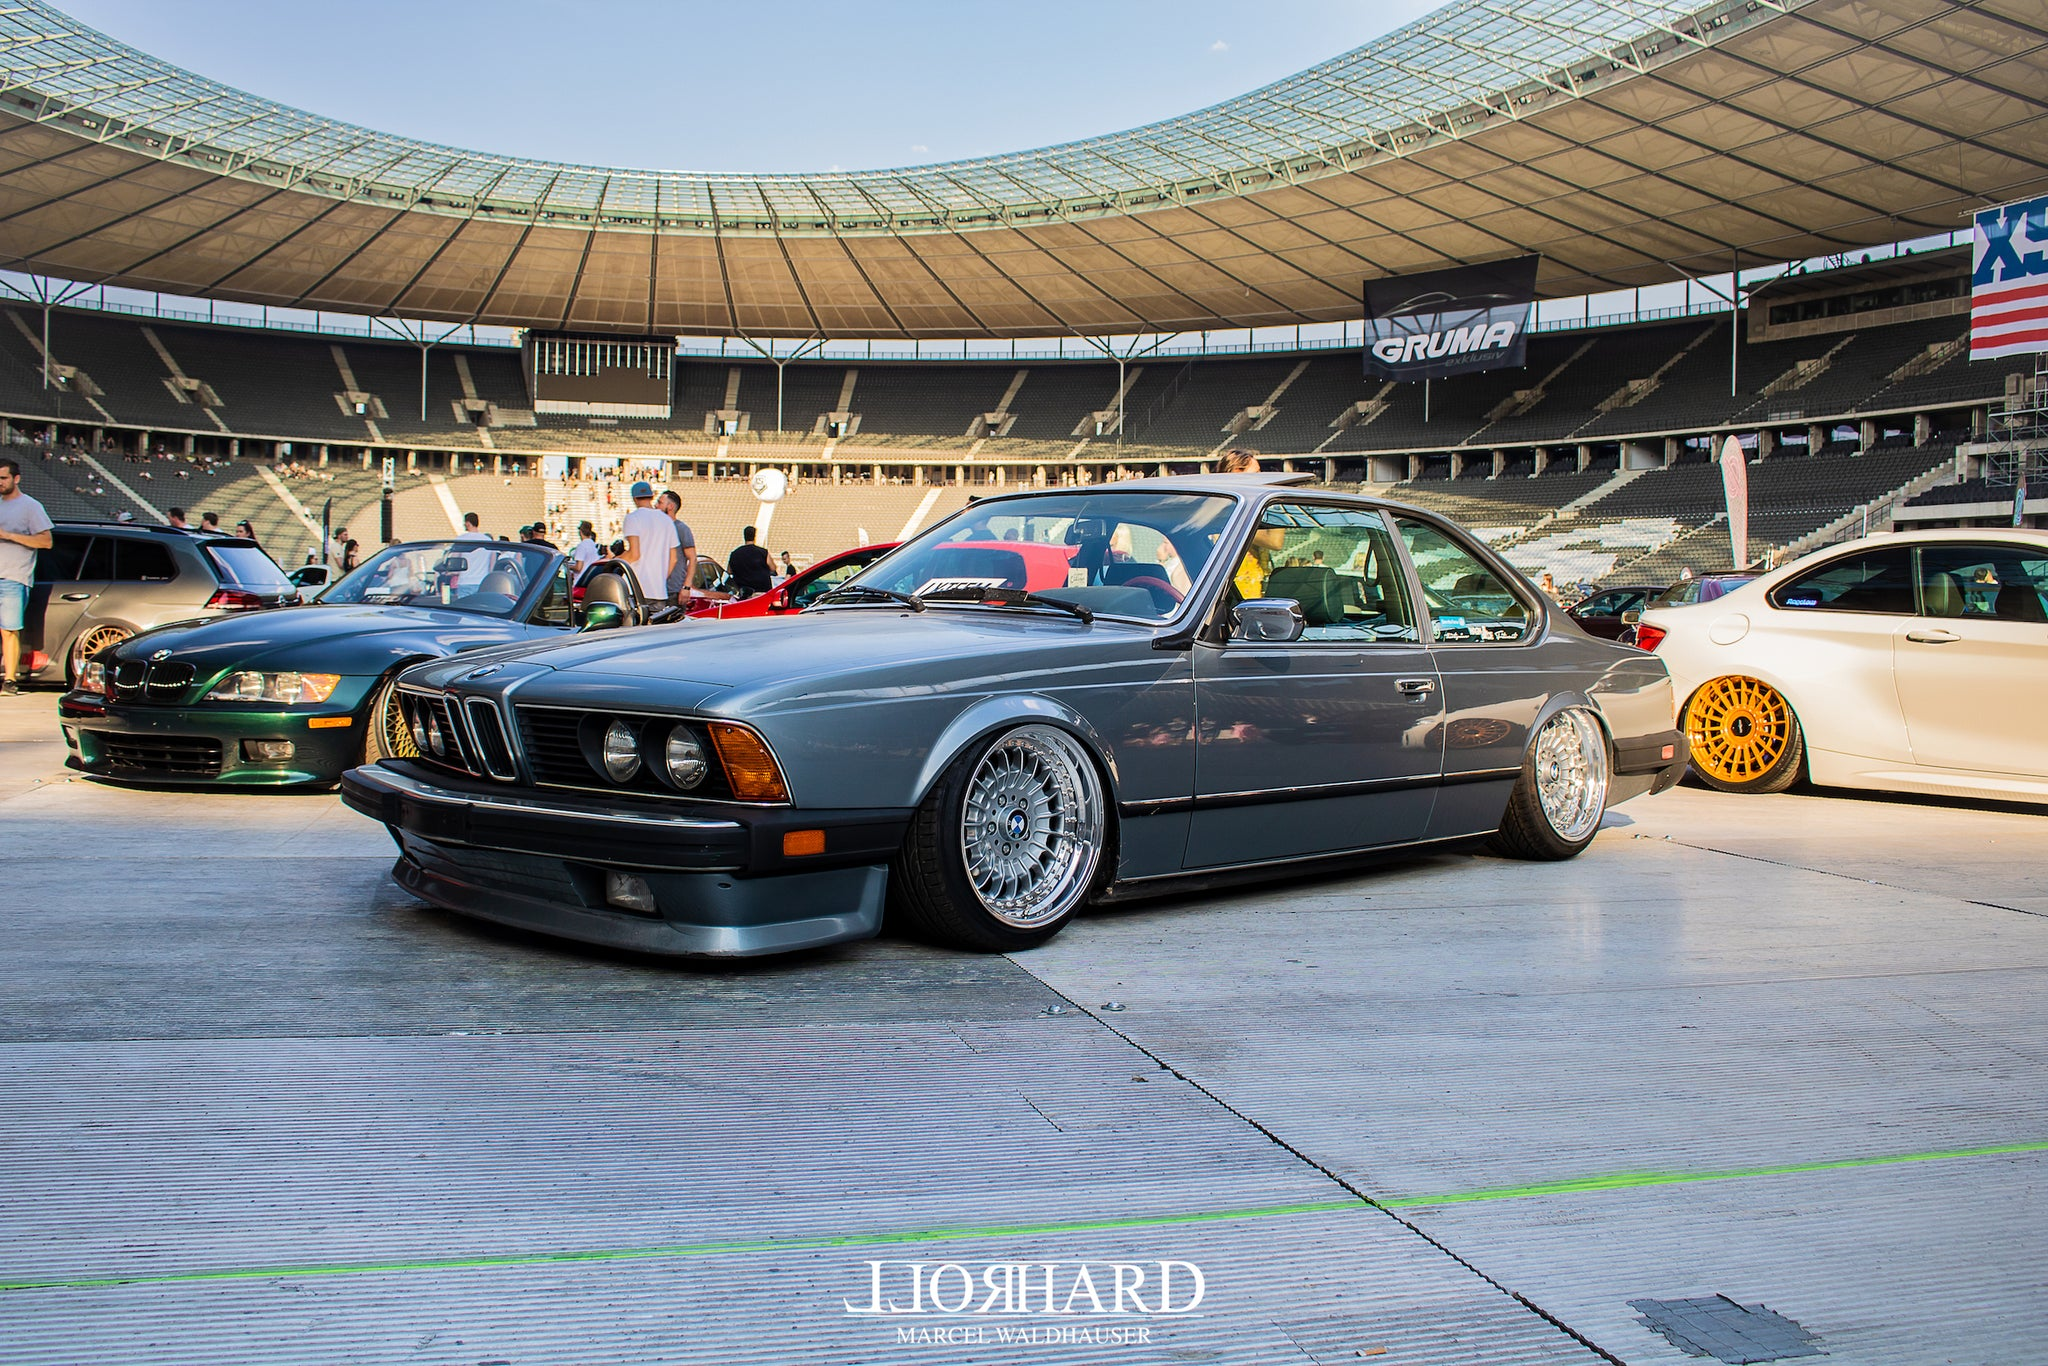 XS Carnight, Berlin Olympic Stadium, XS Mag, Sourkrauts, BBS wheels, rotiform, airlift, airride, low cars, stance, low car community